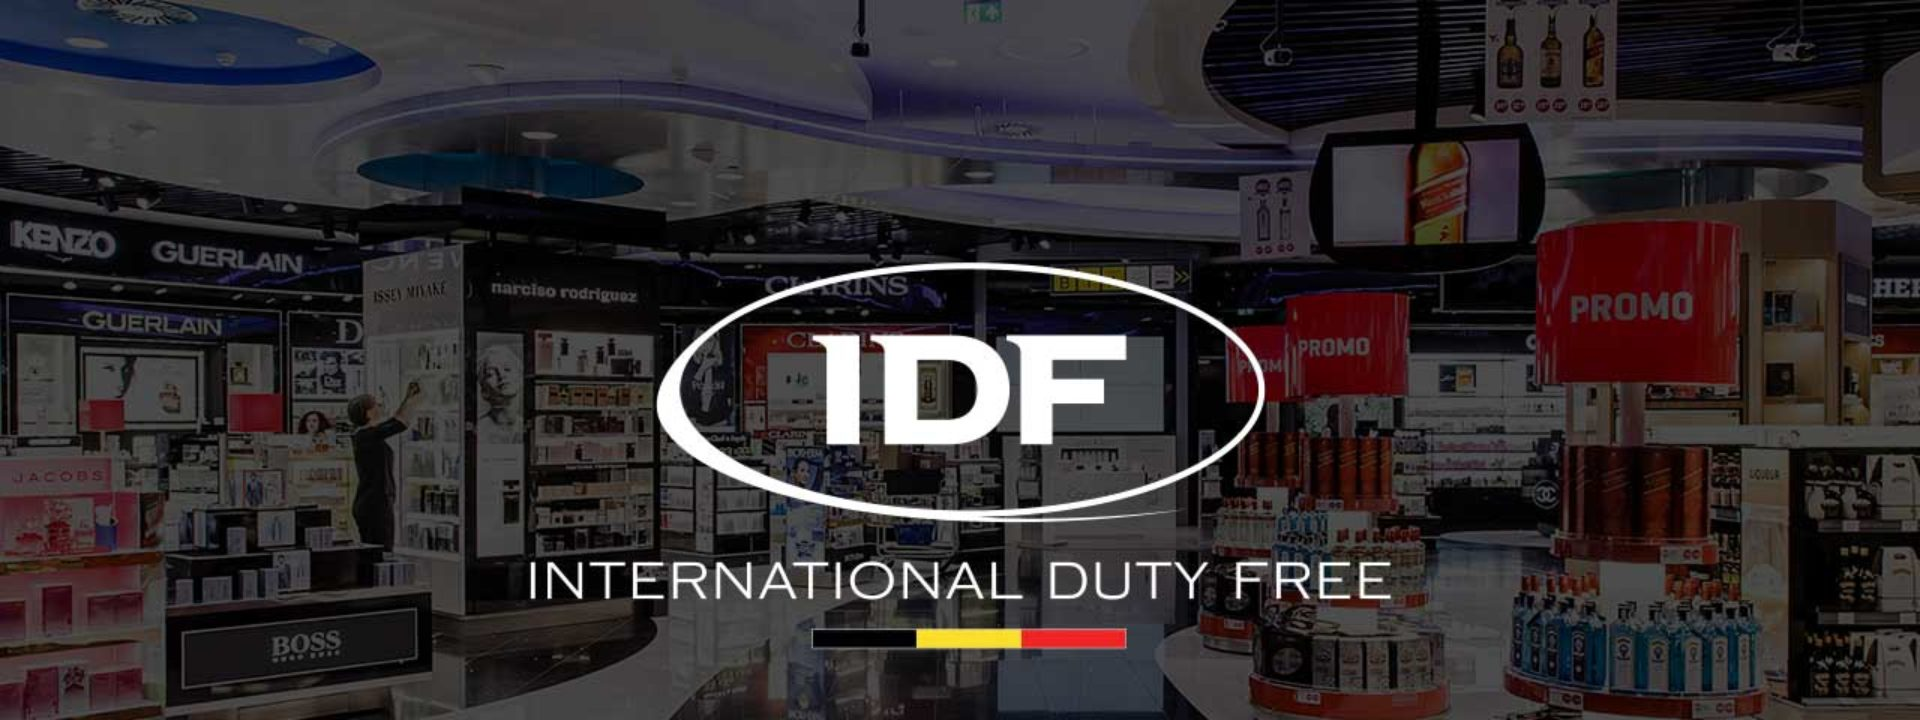 Lagardère Travel Retail signs an agreement to acquire International Duty Free (IDF)